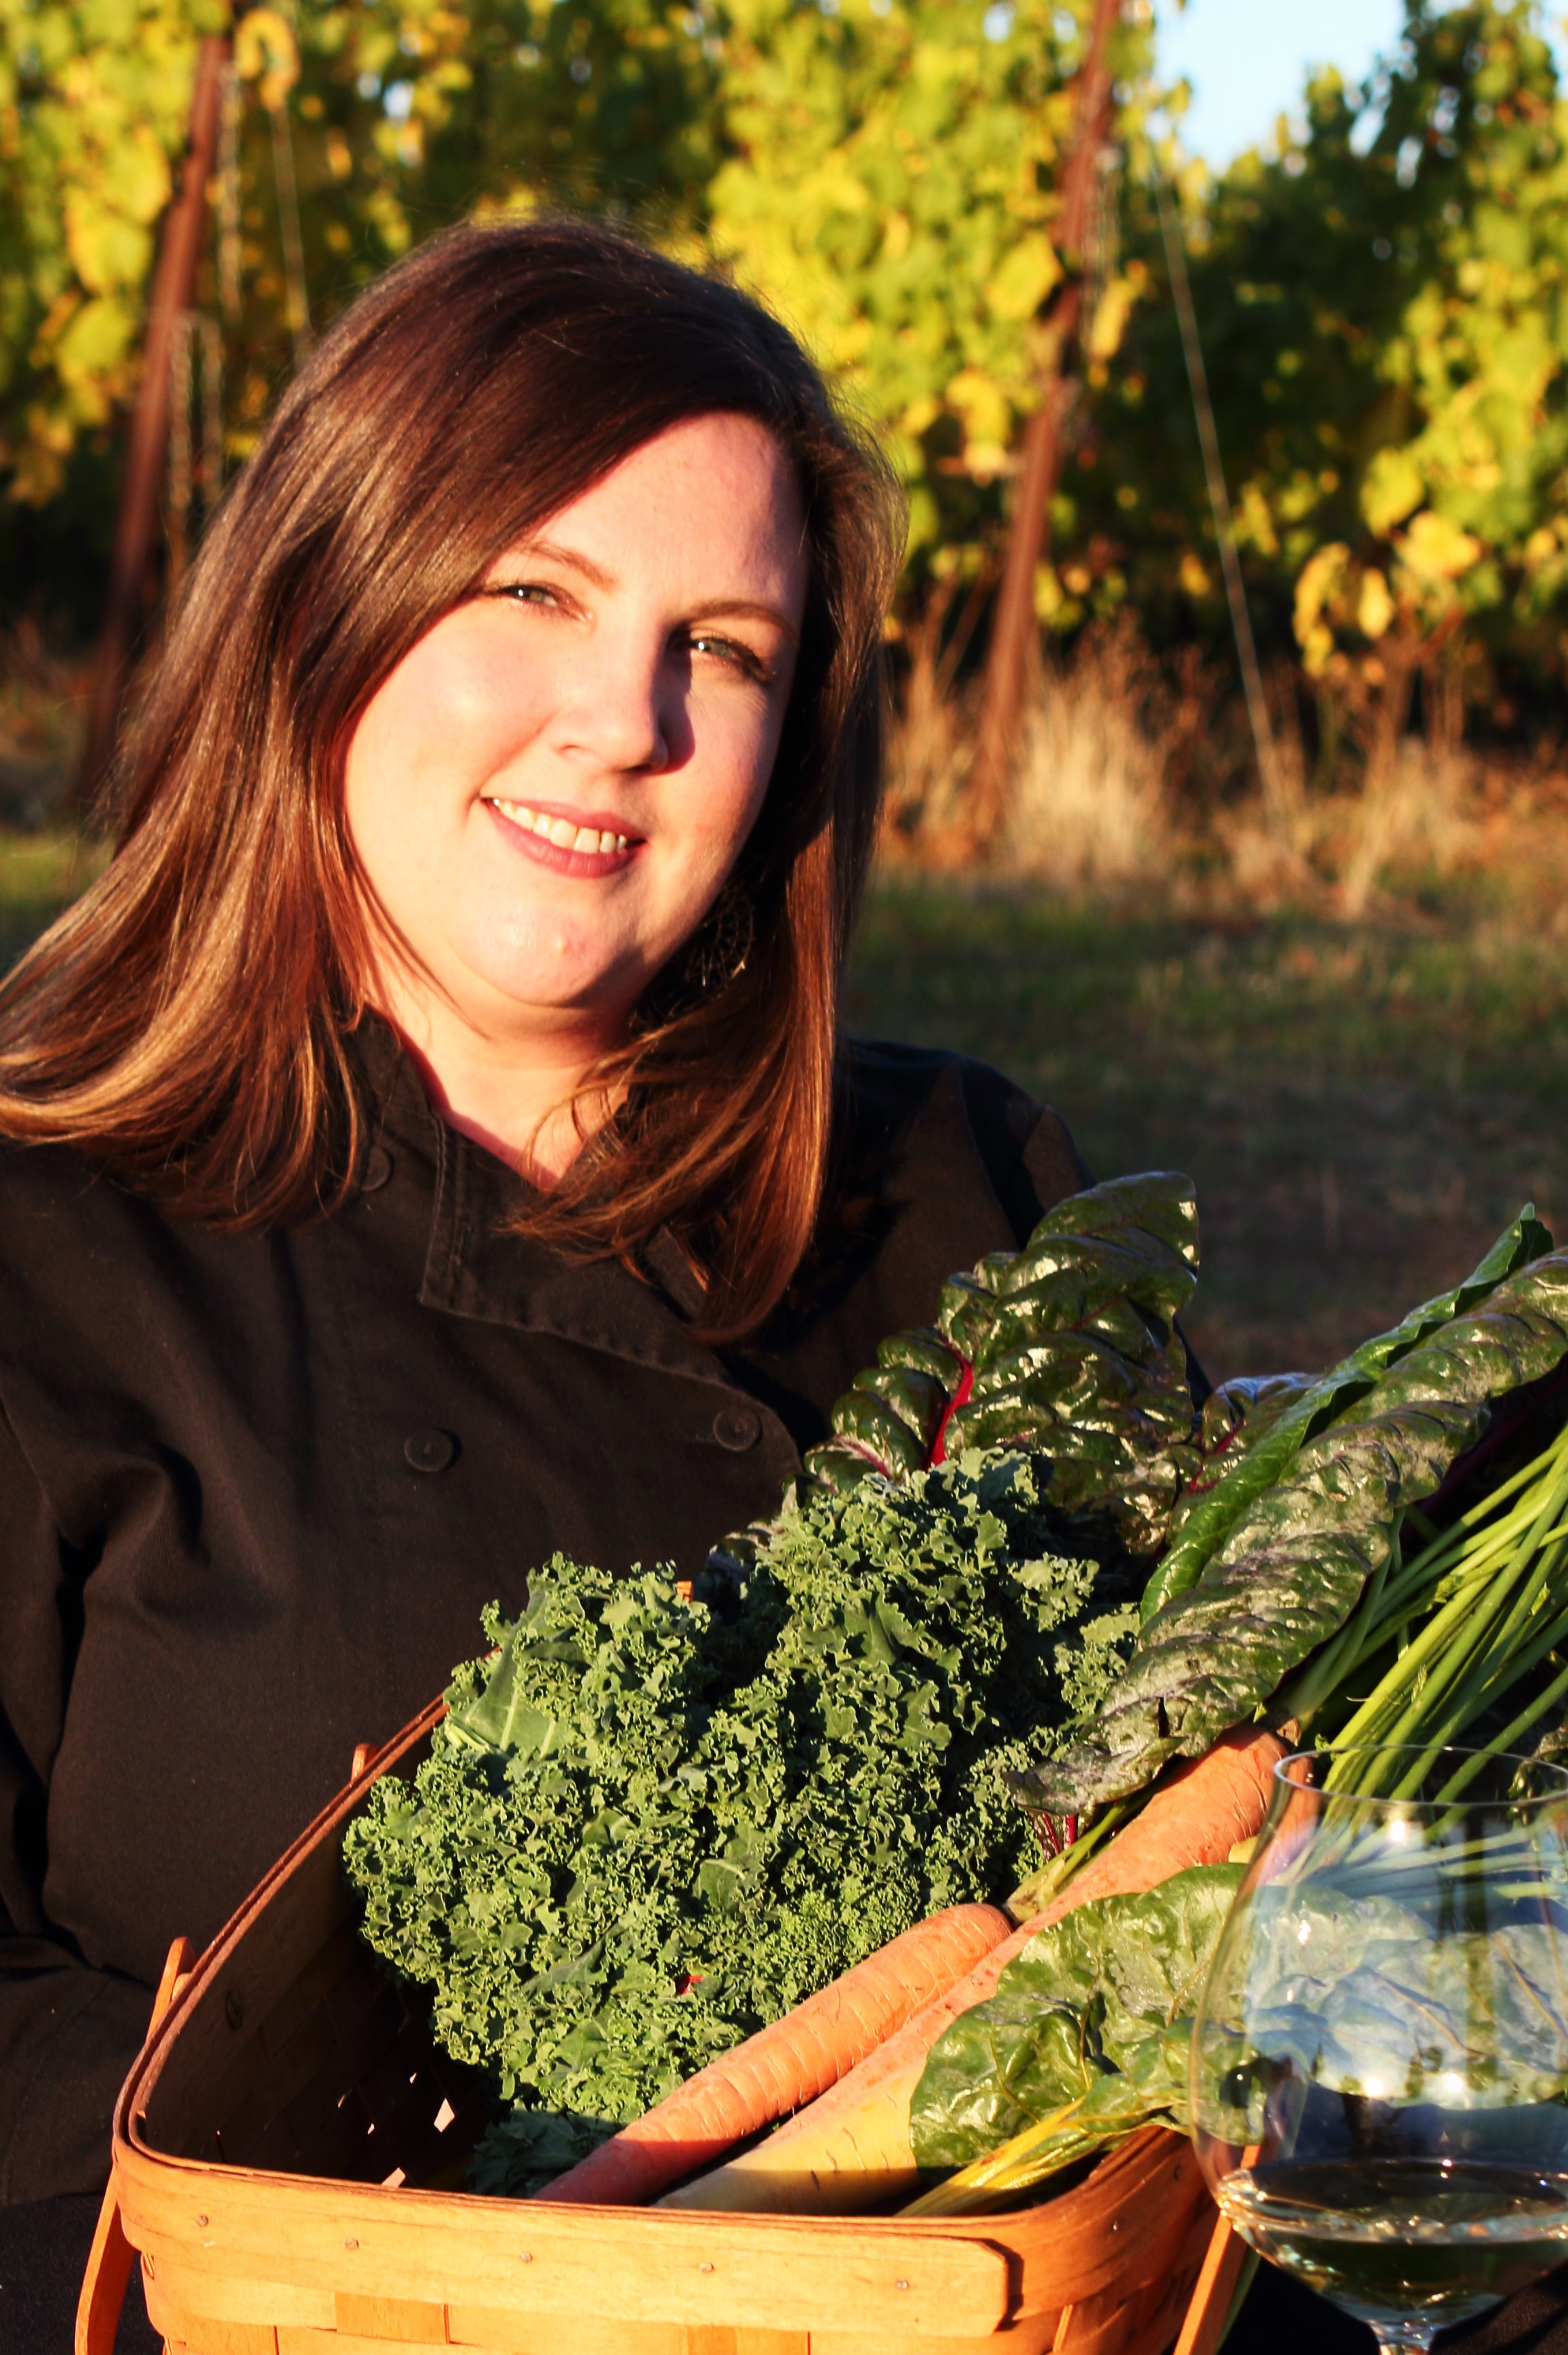 Chef Rebecca Clarke at the helm of Fairsing Vineyard's Culinary program in Oregon's Willamette Valley